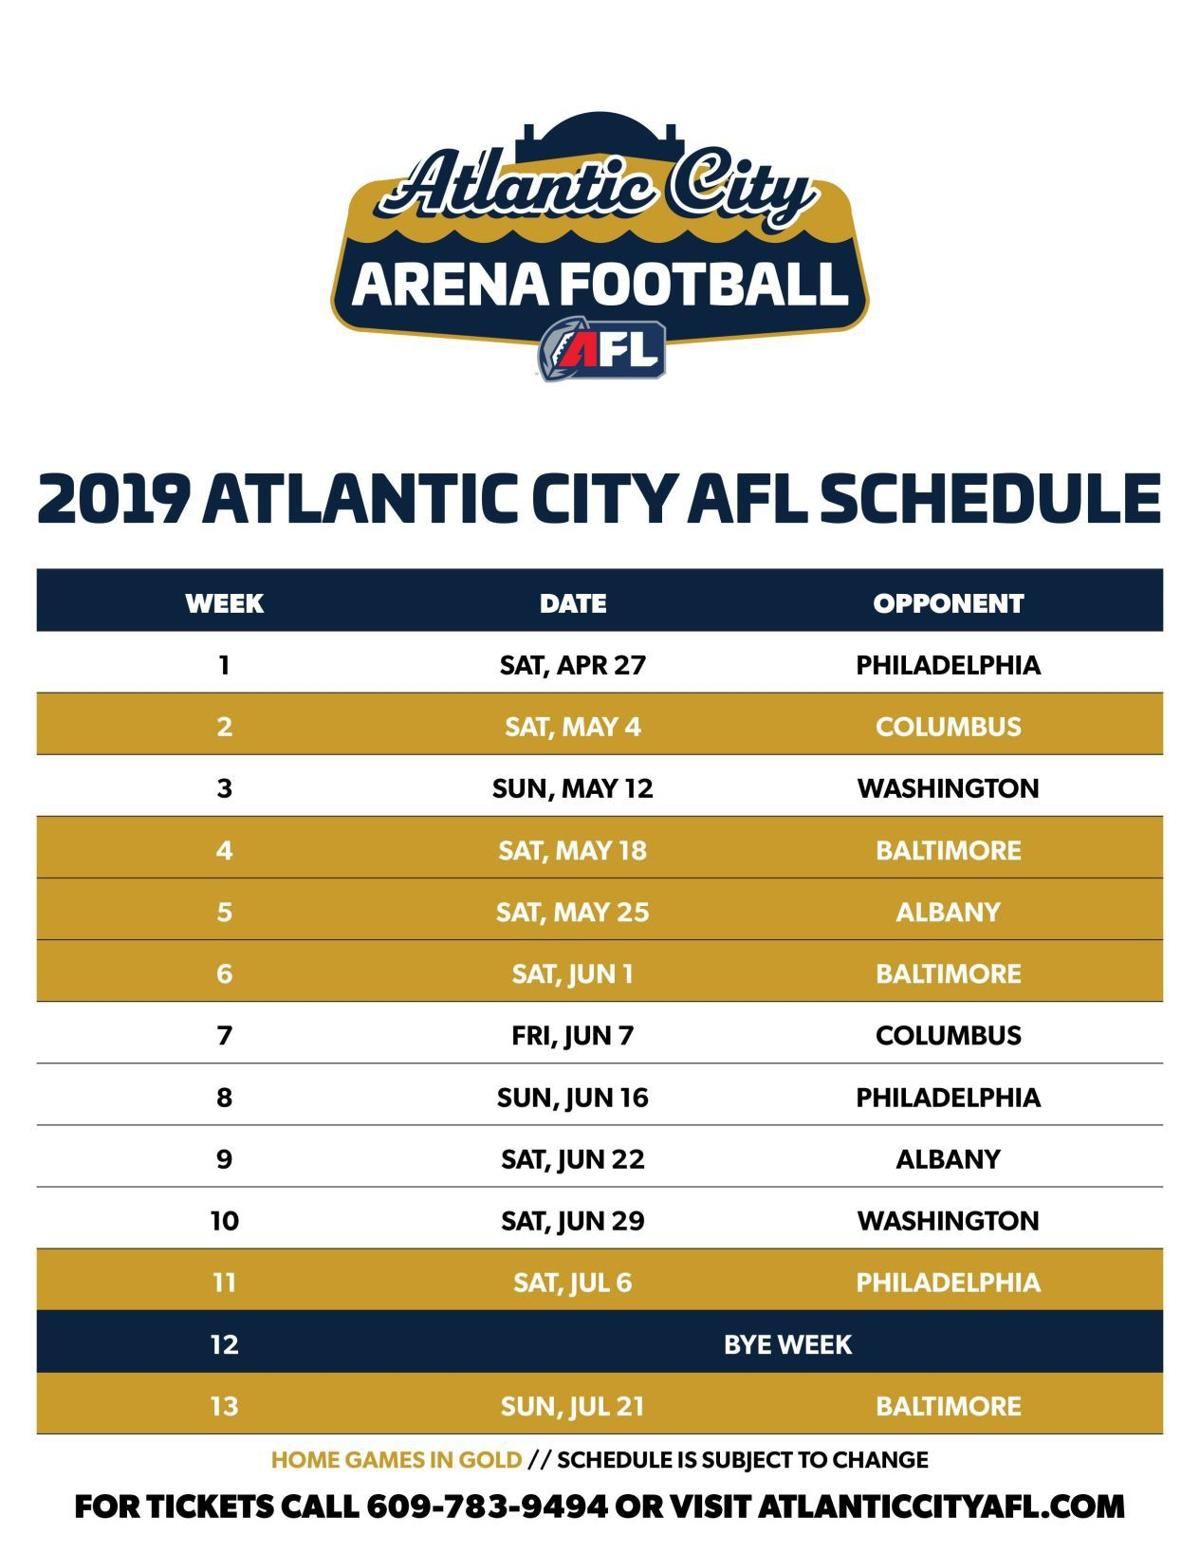 Afl schedule australia betting stats napoli inter betting preview nfl